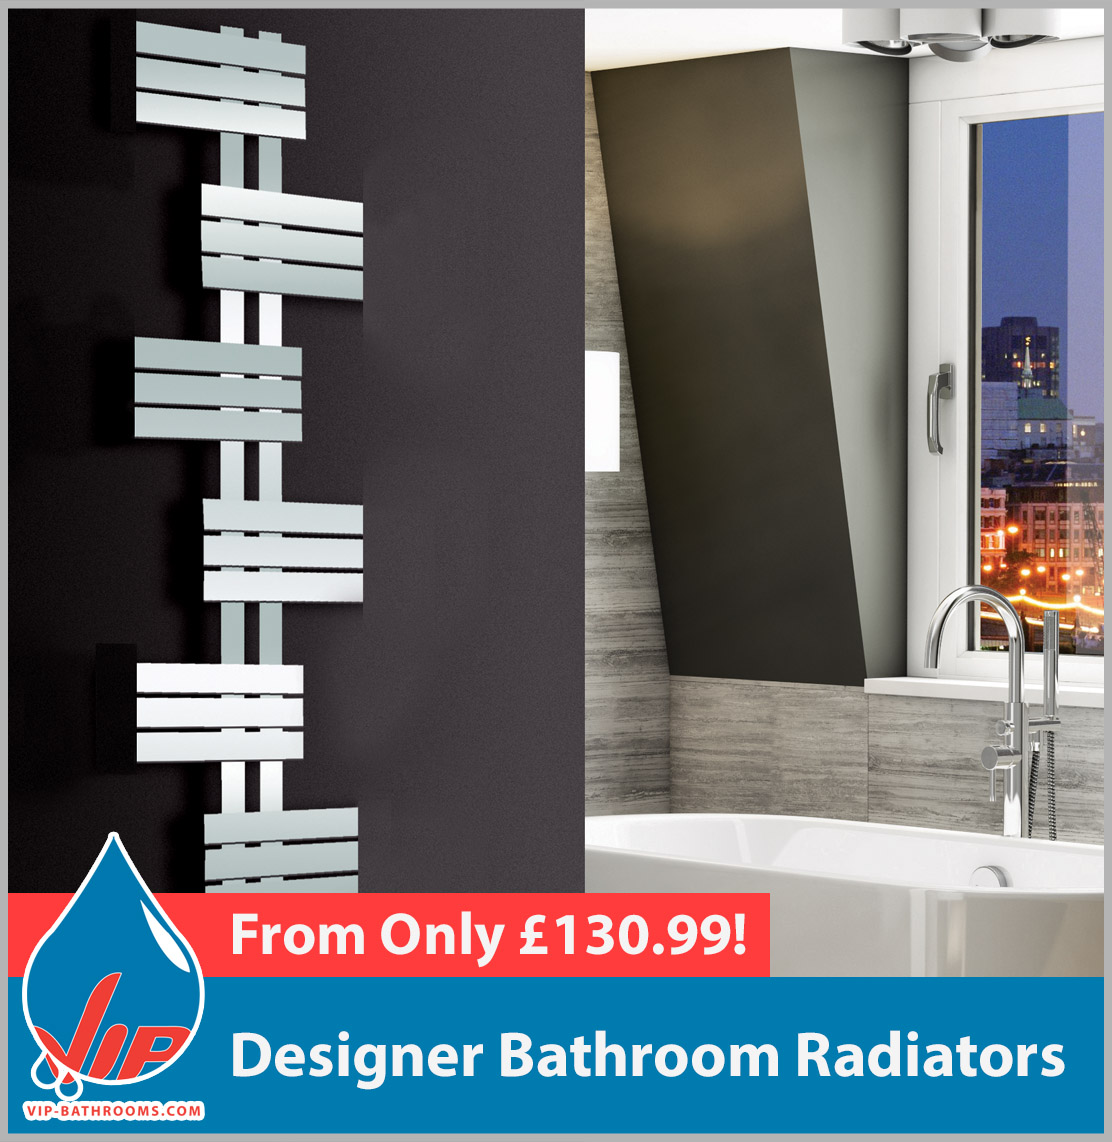 Click here to see our range of stunning designer luxury radiators